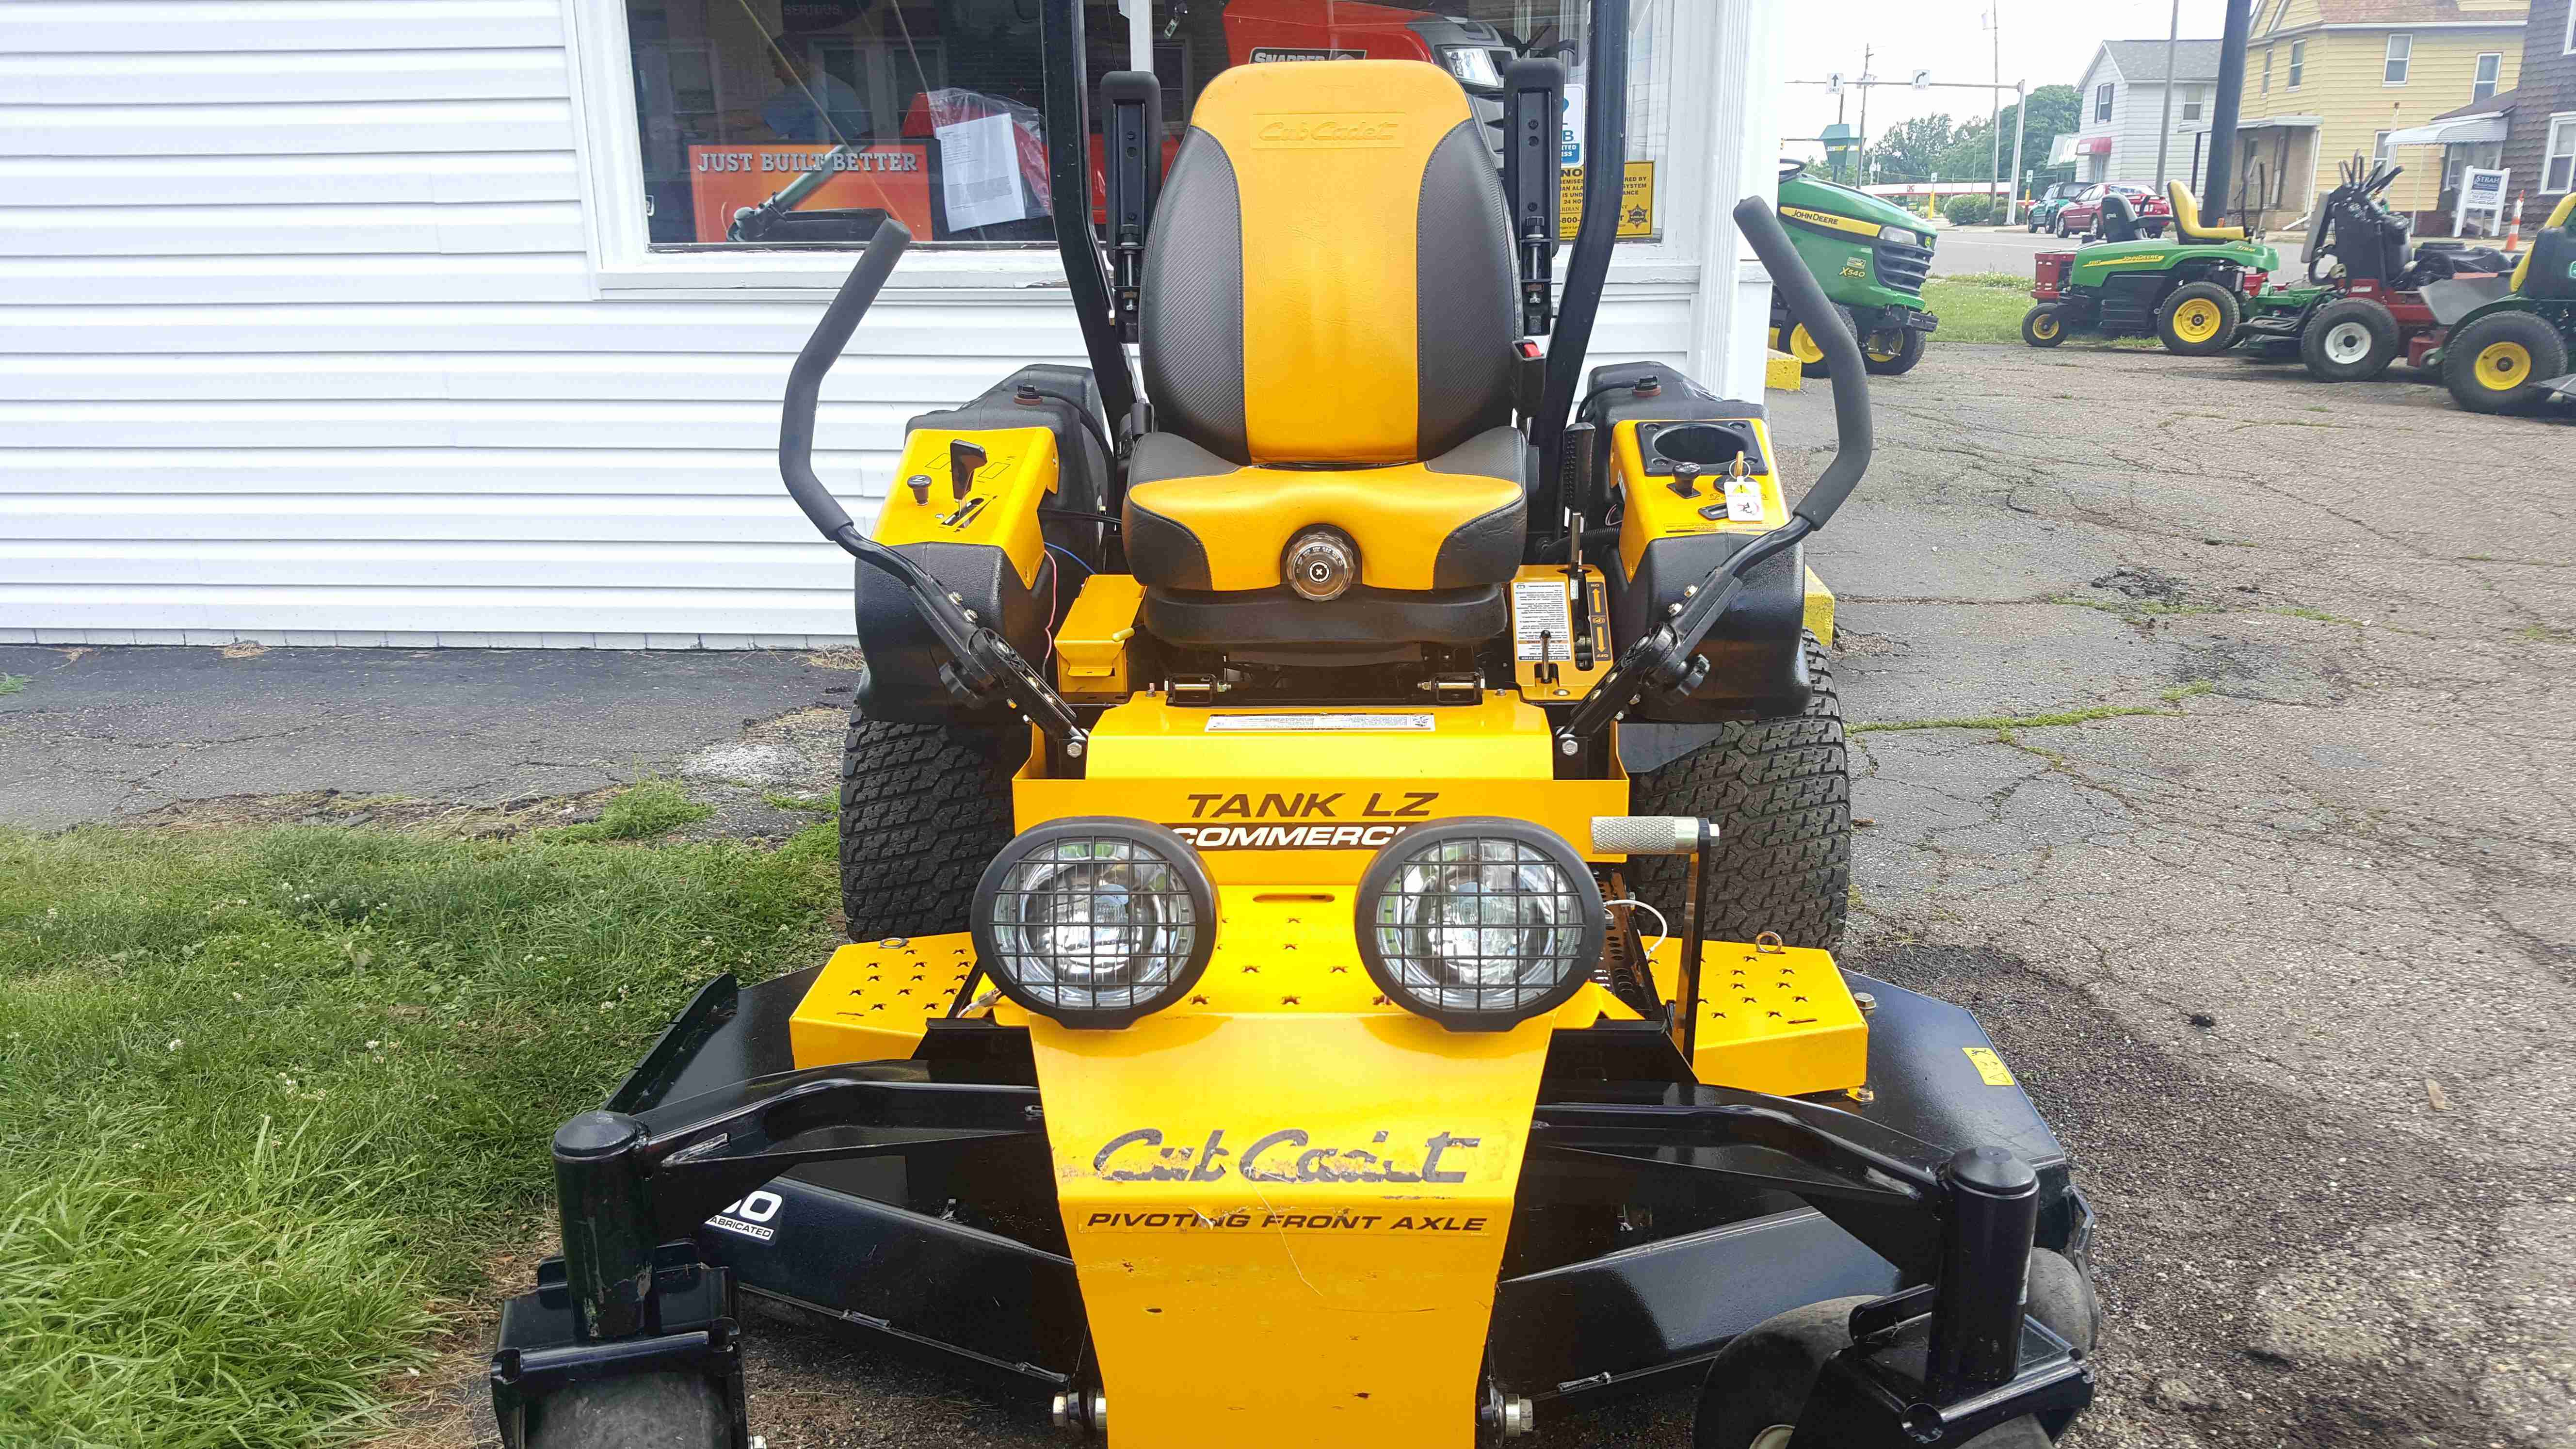 Used Cub Cadet Riding Lawn Mowers For Sale Cub Cadet Riding